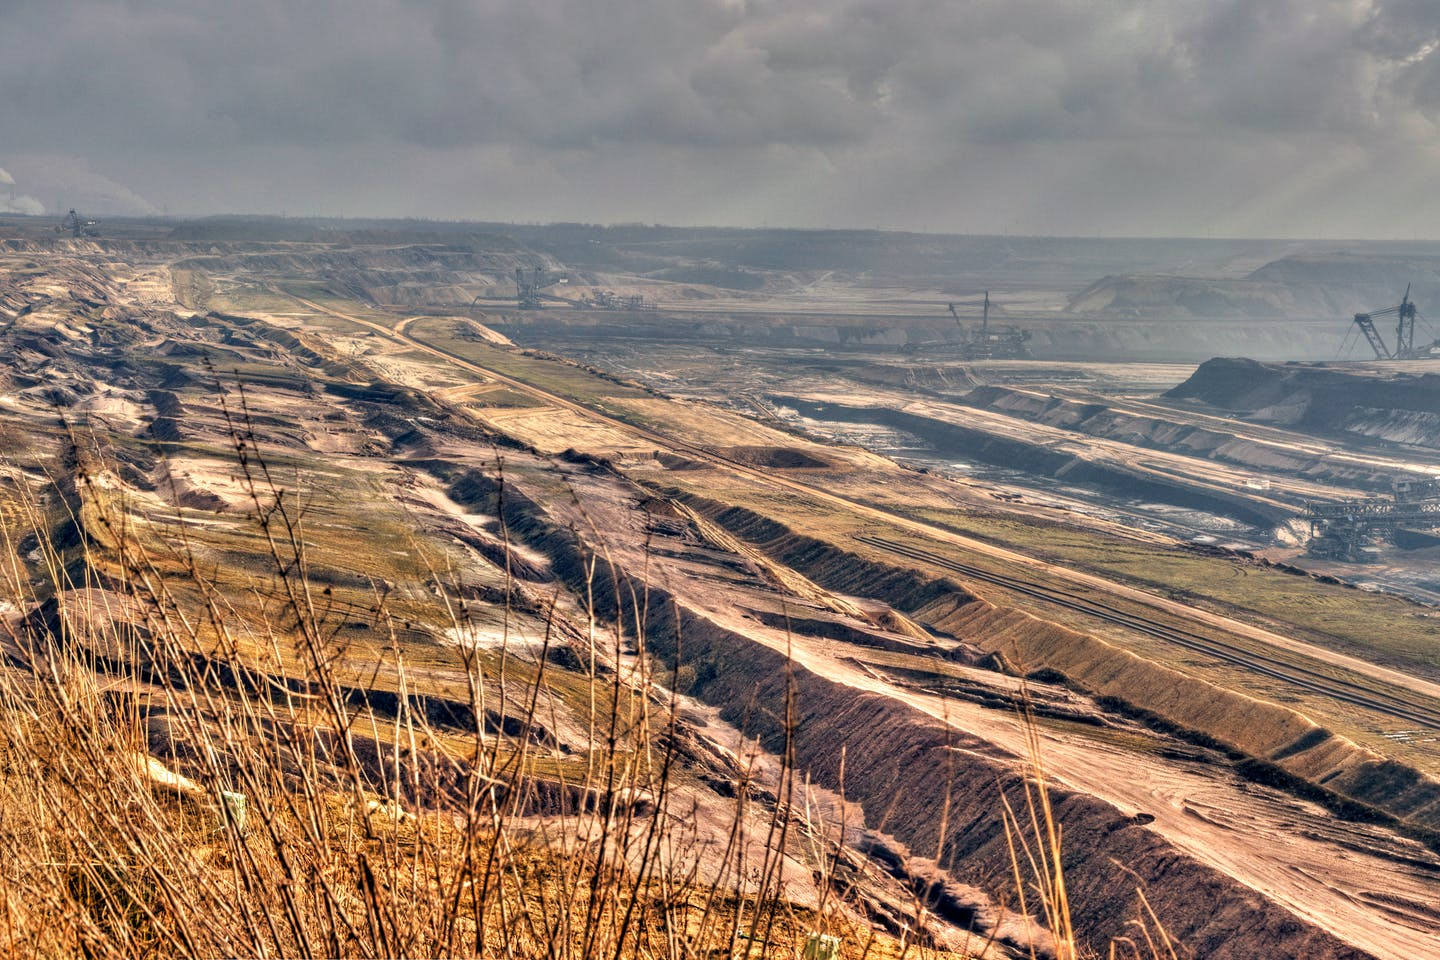 Garzweiler II open coal mine in Germany